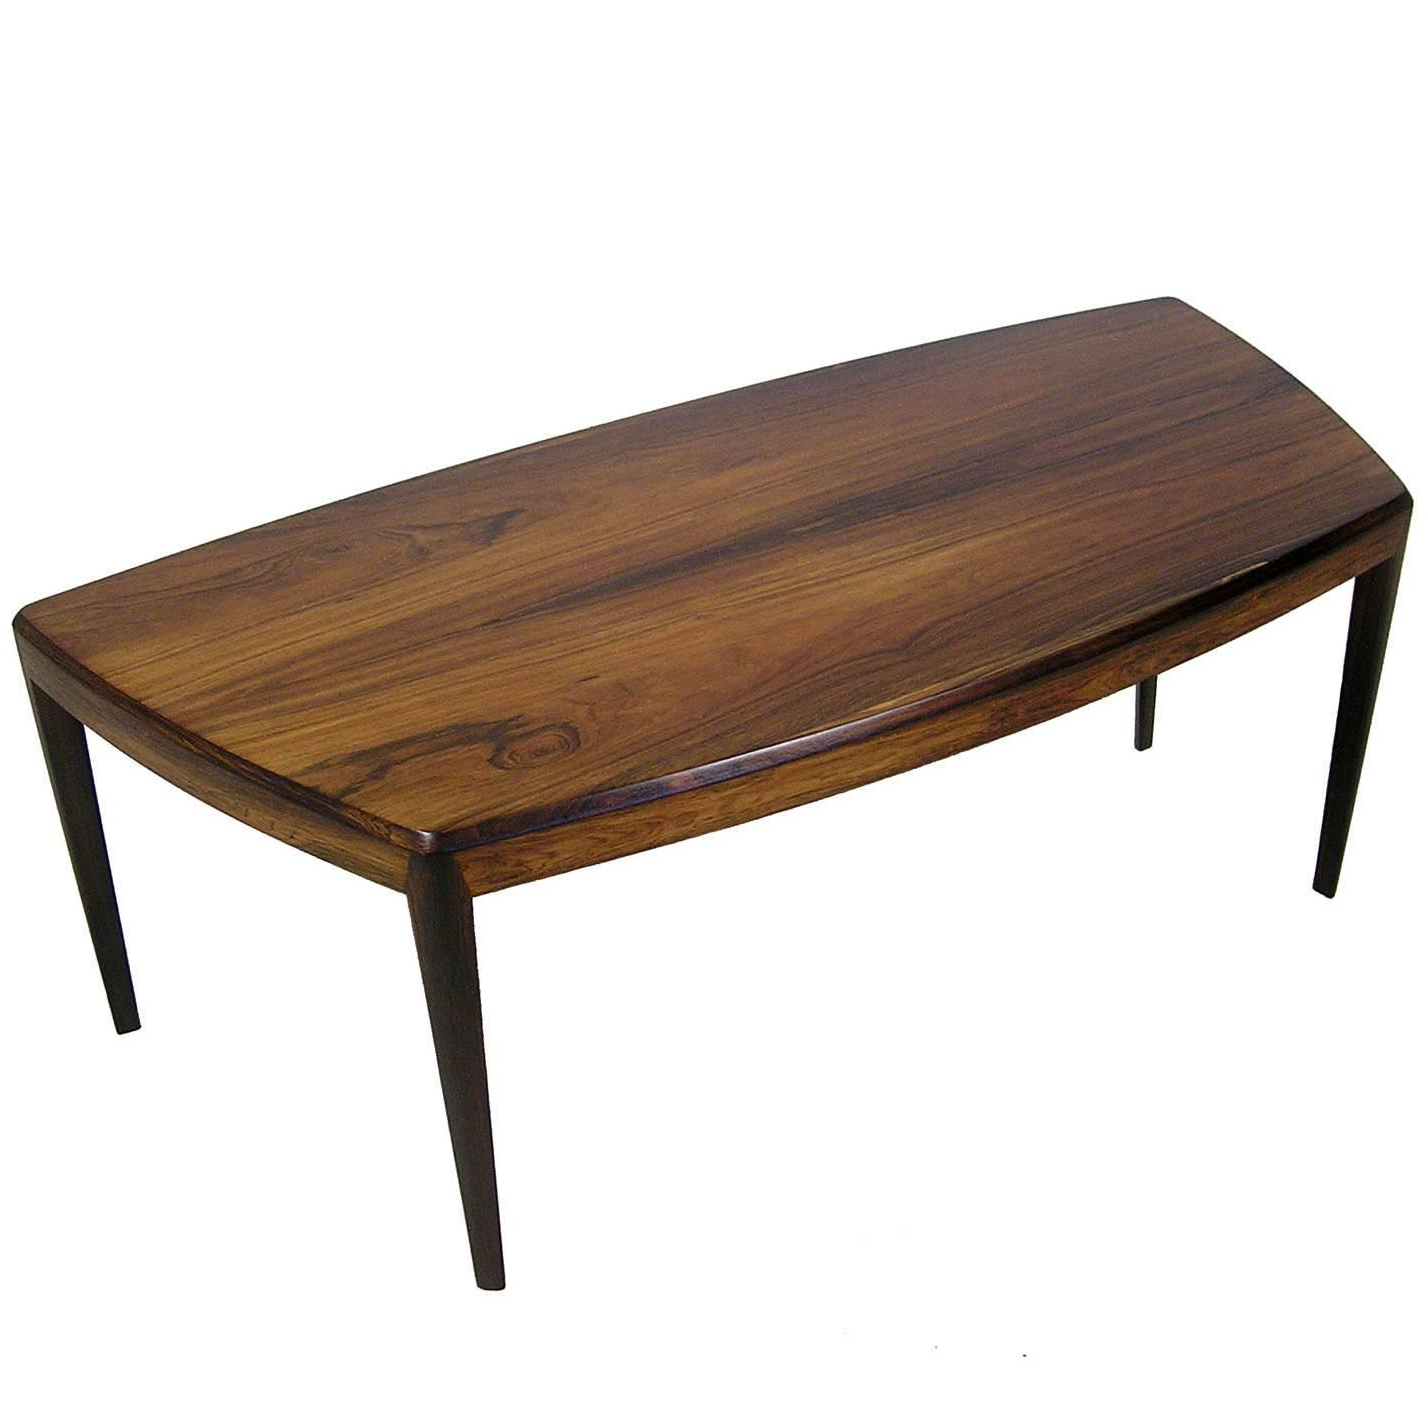 Widely Used 1960S Brazilian Rosewood Coffee Tablekai Kristiansen, Denmark Intended For Kai Large Cocktail Tables (Gallery 4 of 20)